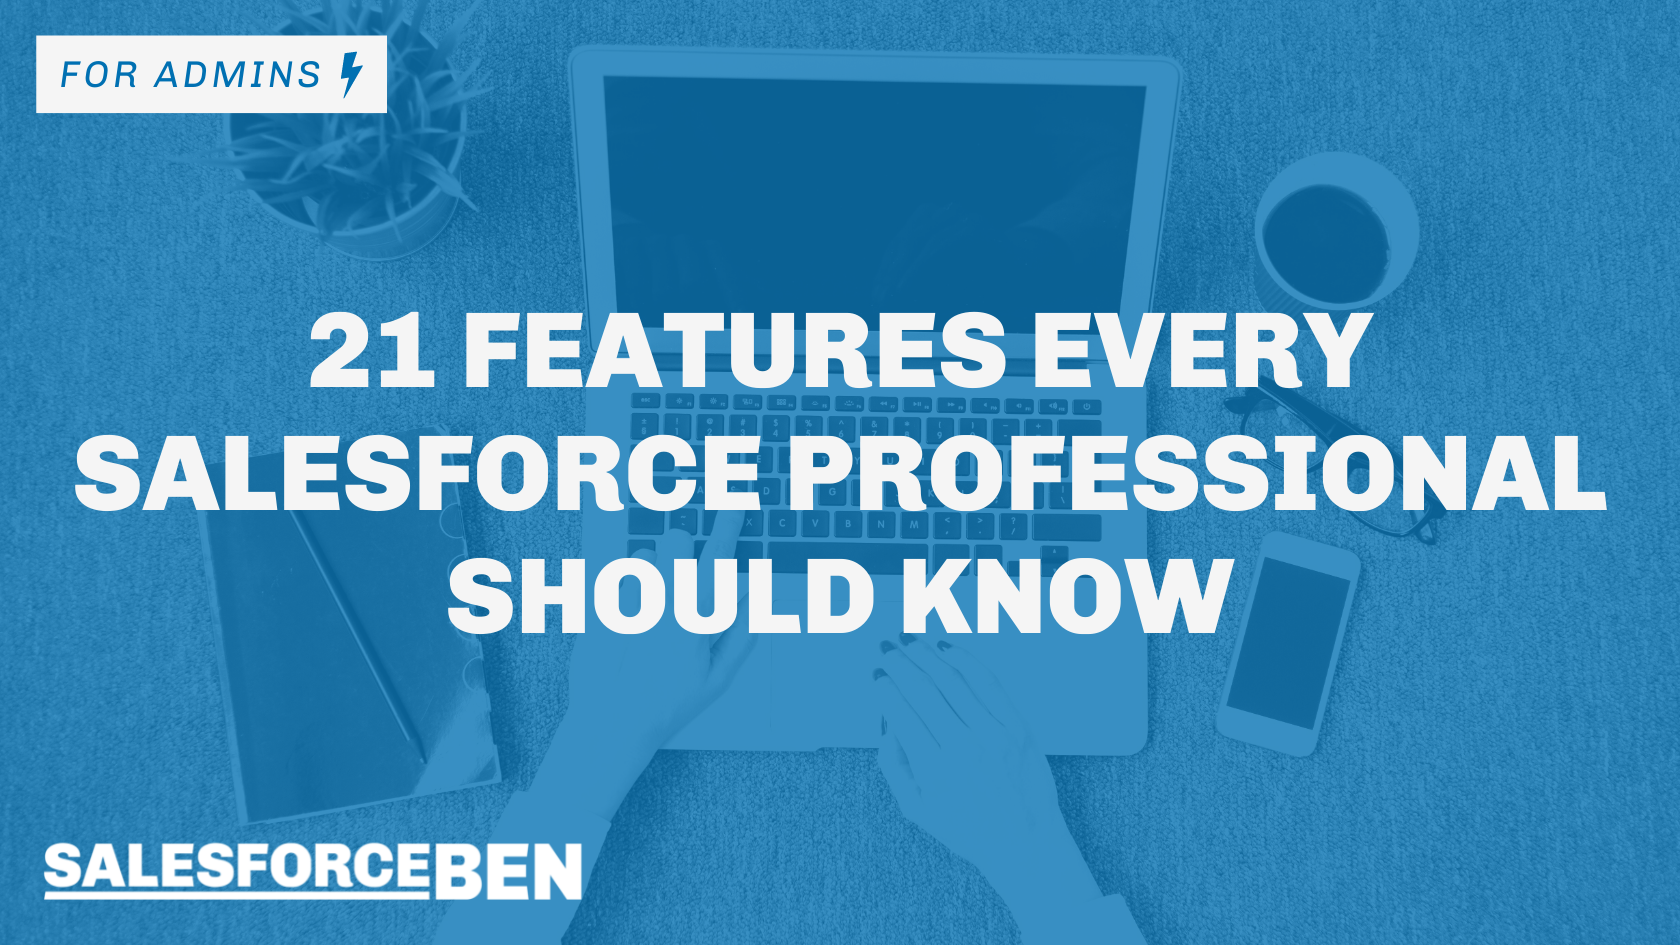 21 Features every Salesforce Professional should know